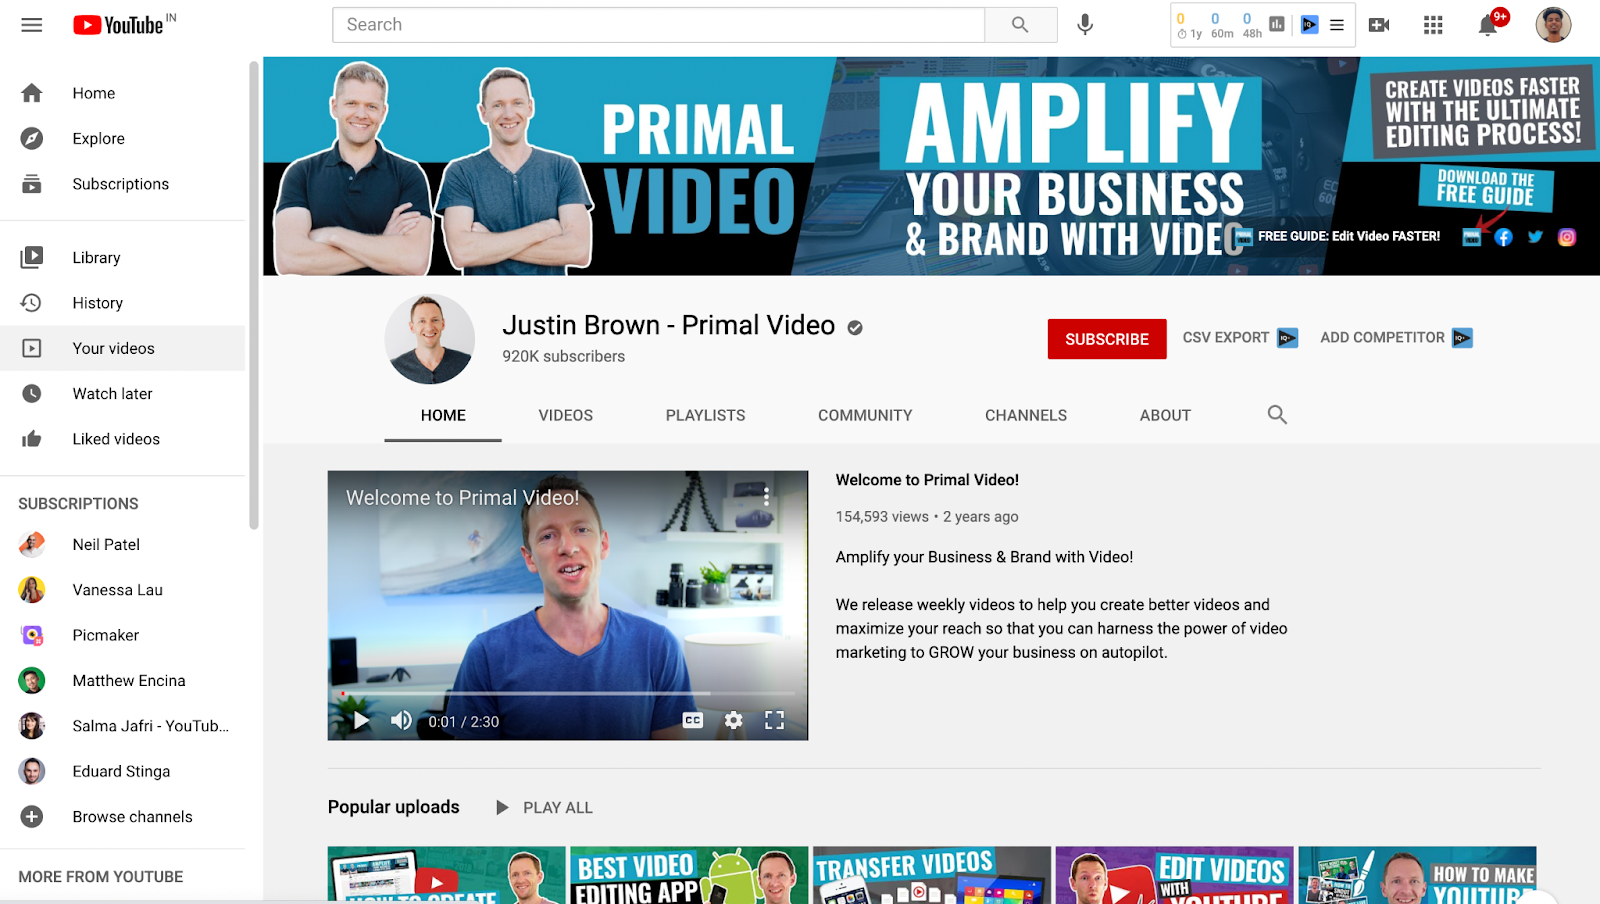 A screenshot of Primal video's YouTube channel 1